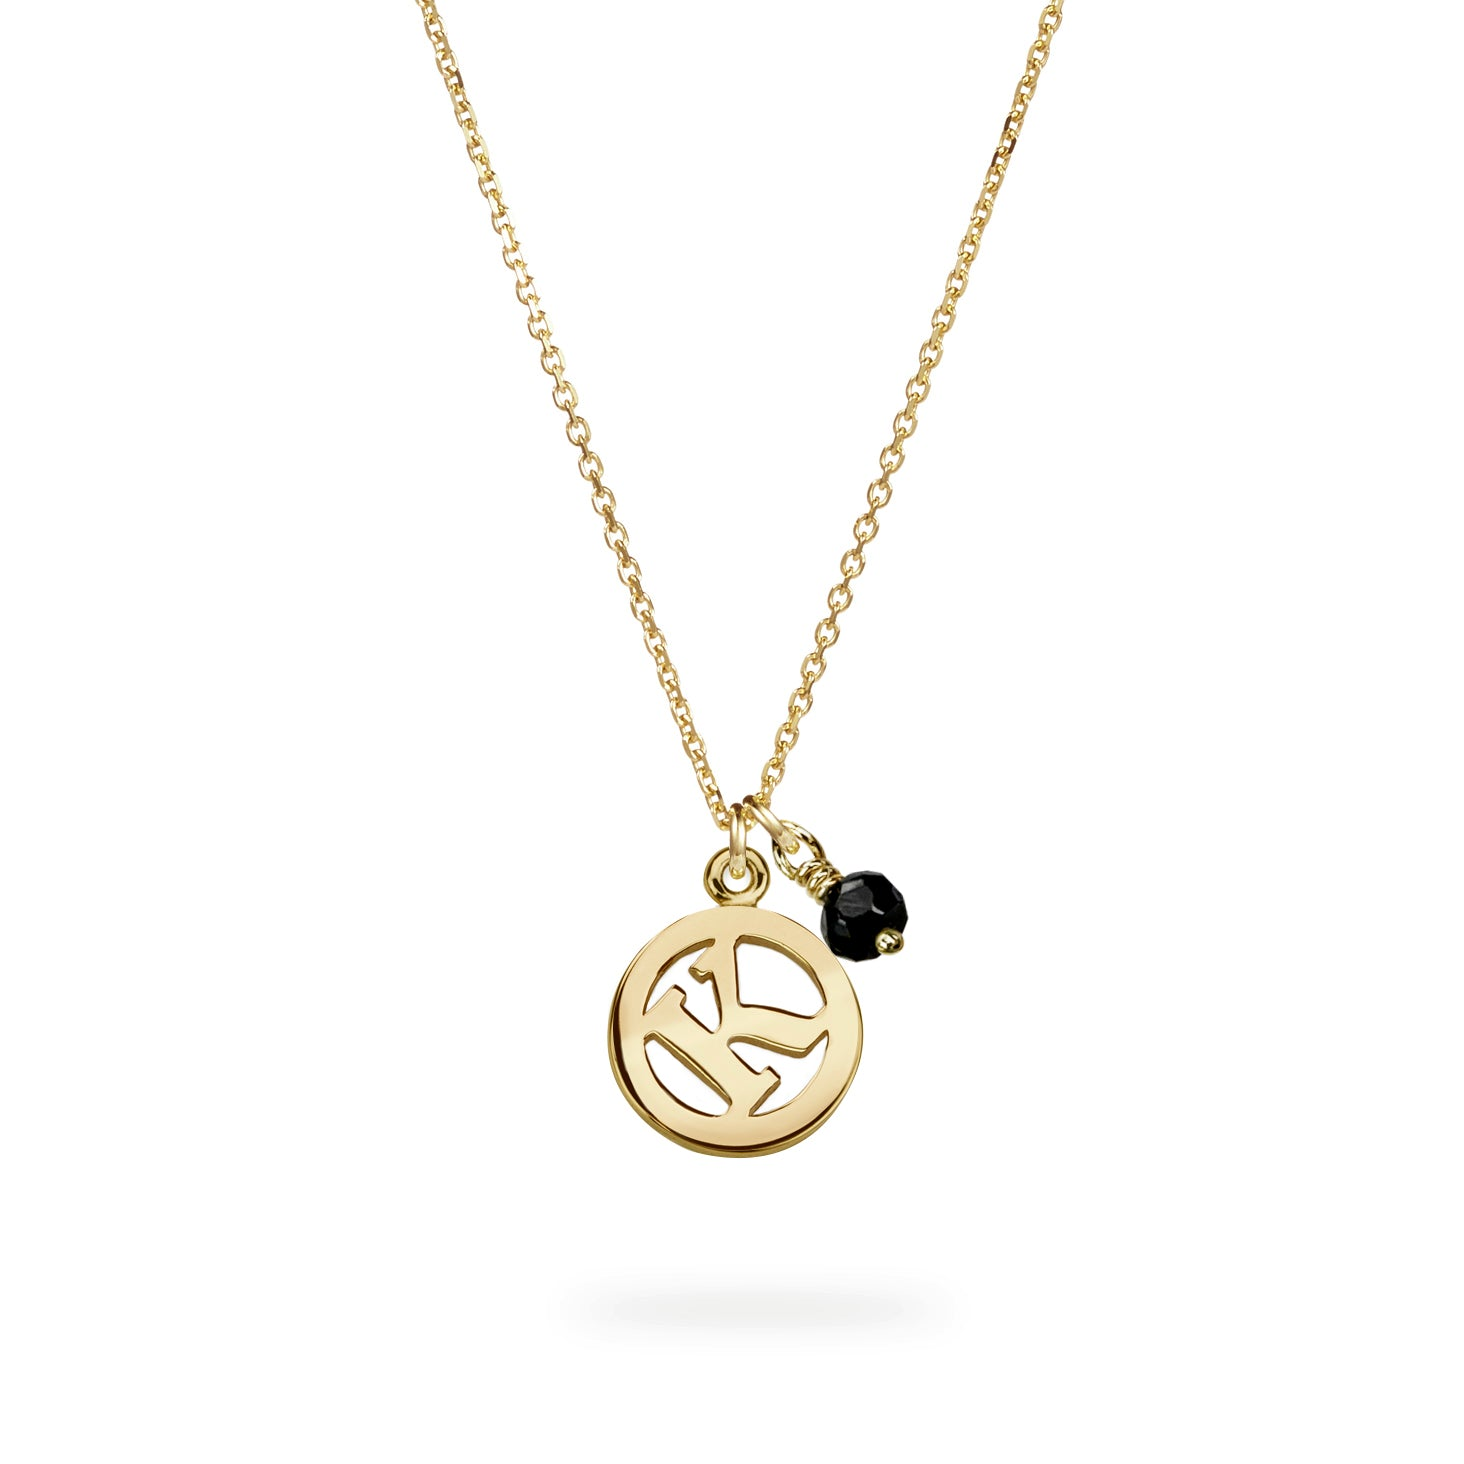 Luke Rose Jewellery gold black spinel initial necklace